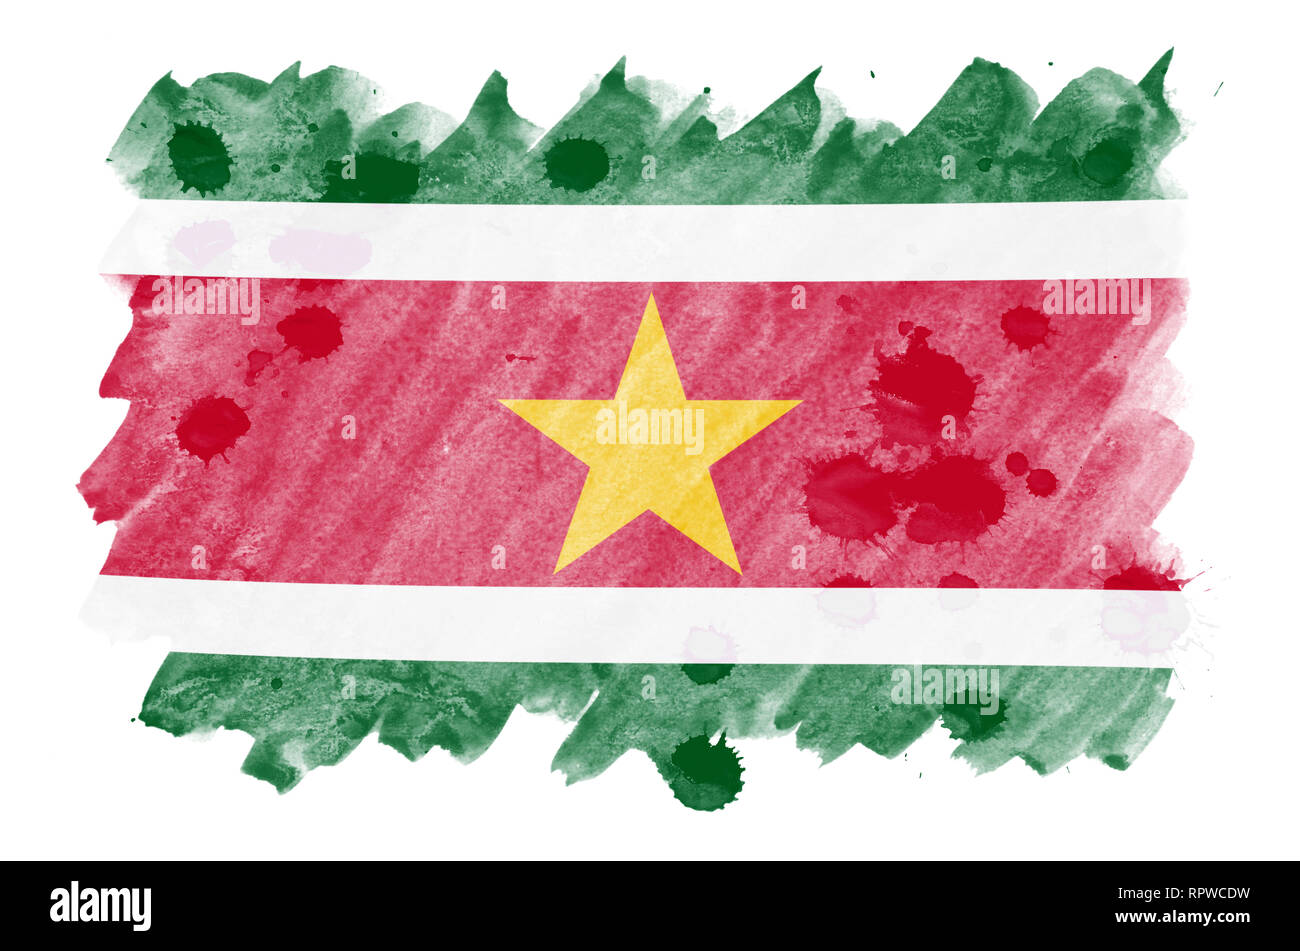 Suriname flag  is depicted in liquid watercolor style isolated on white background. Careless paint shading with image of national flag. Independence D - Stock Image